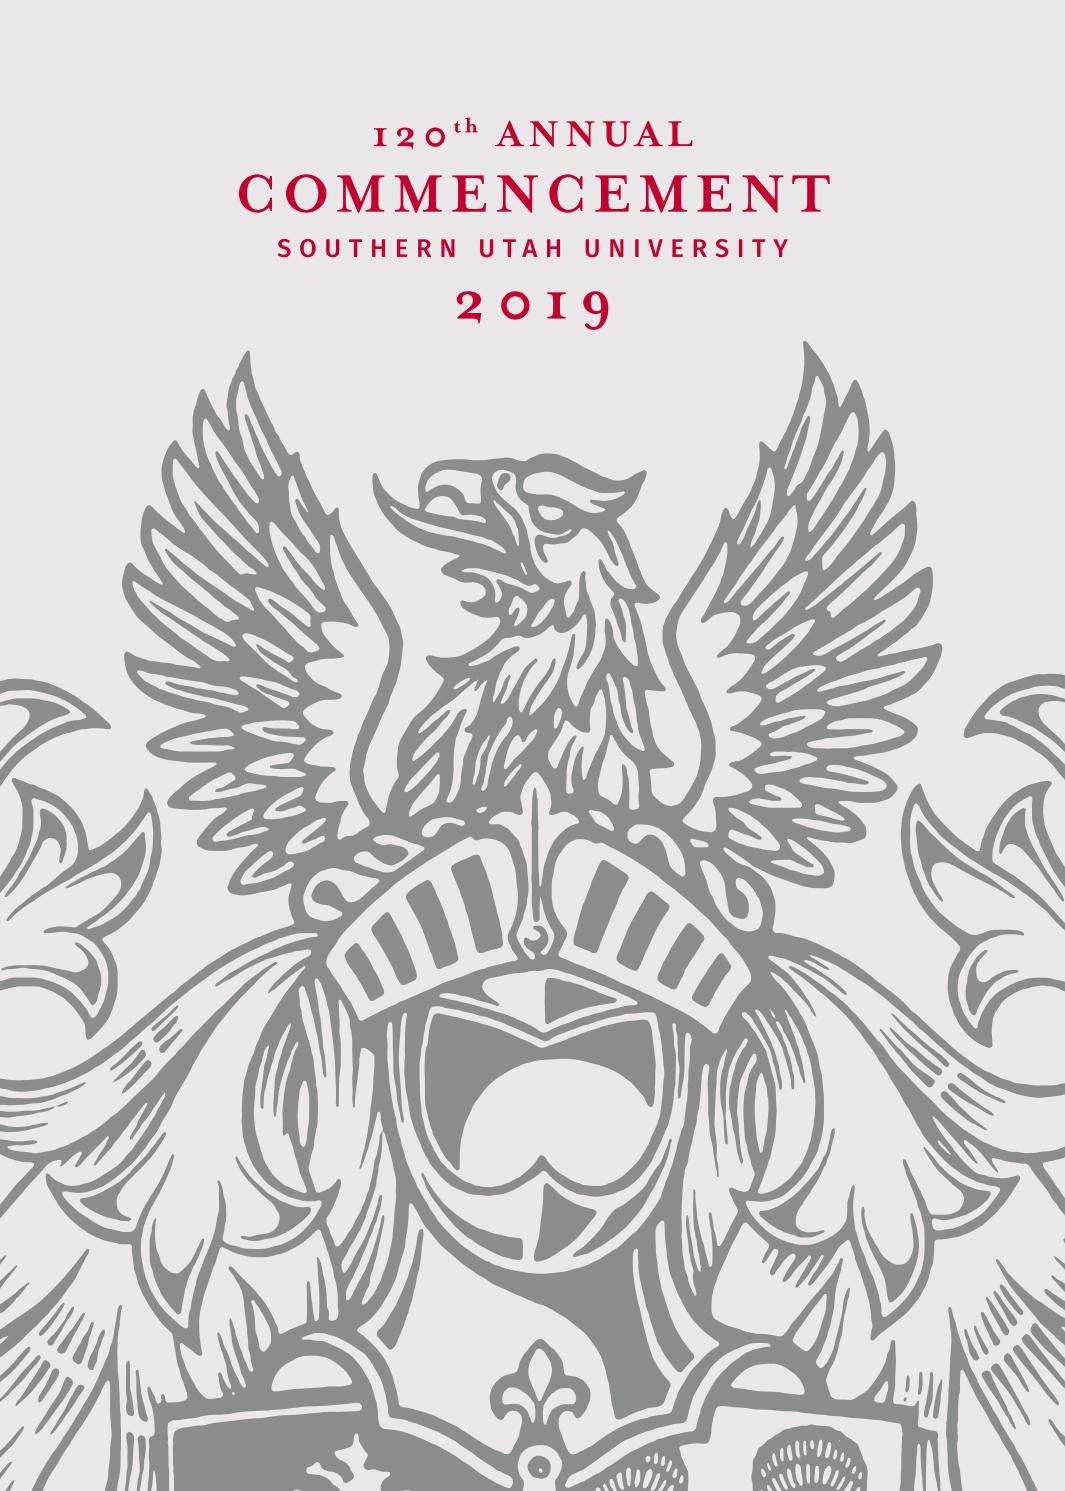 SUU 120th Annual Commencement (2019) by Southern Utah